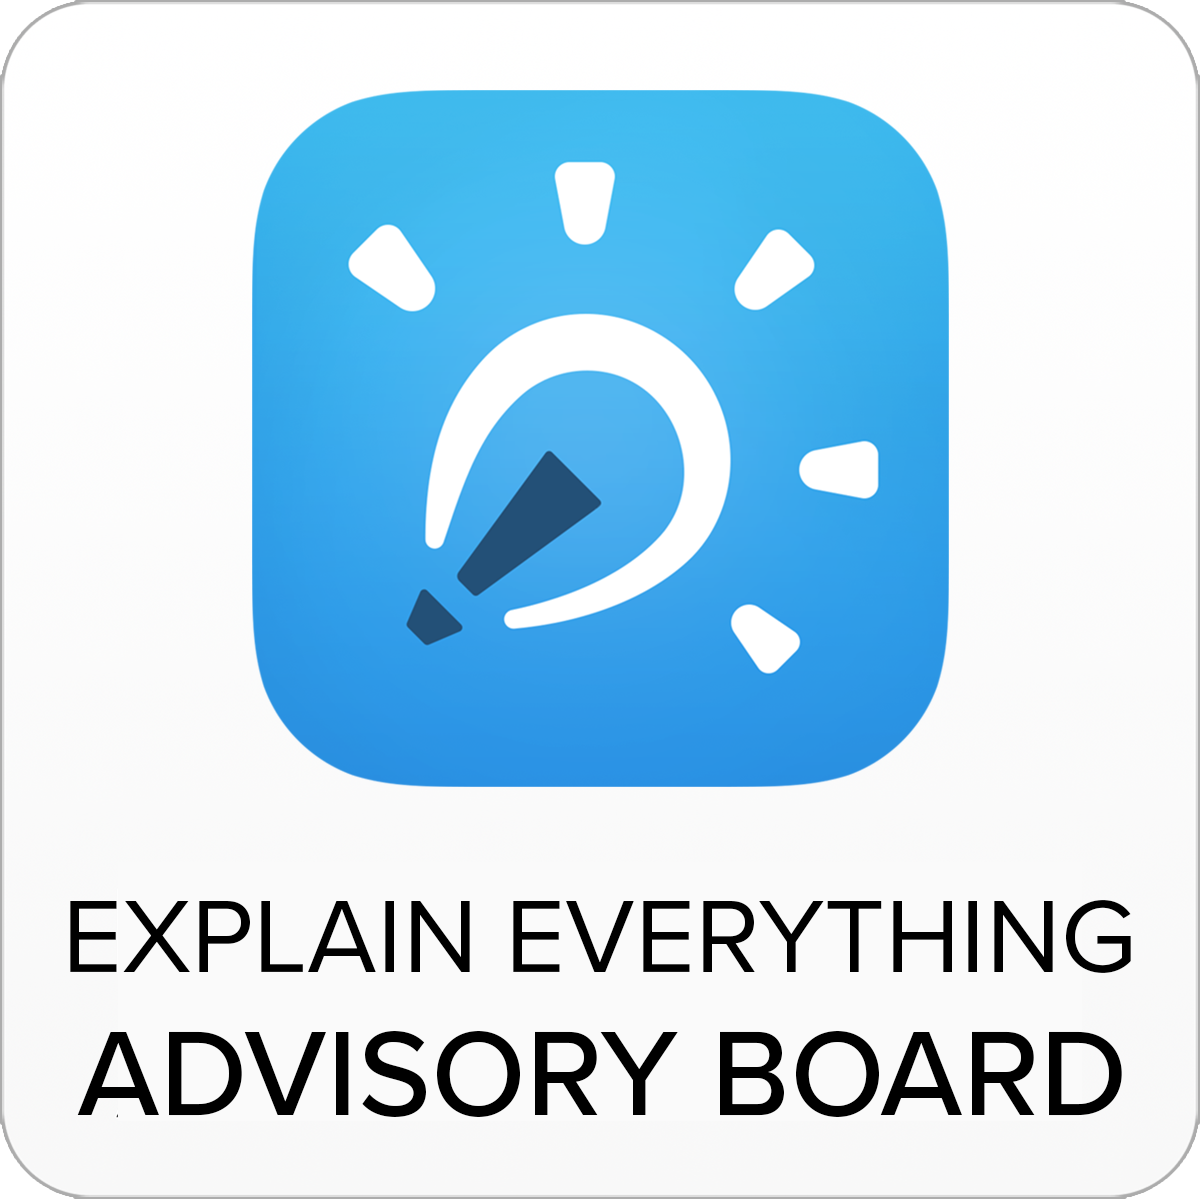 Explain Everything Advisory Board badge